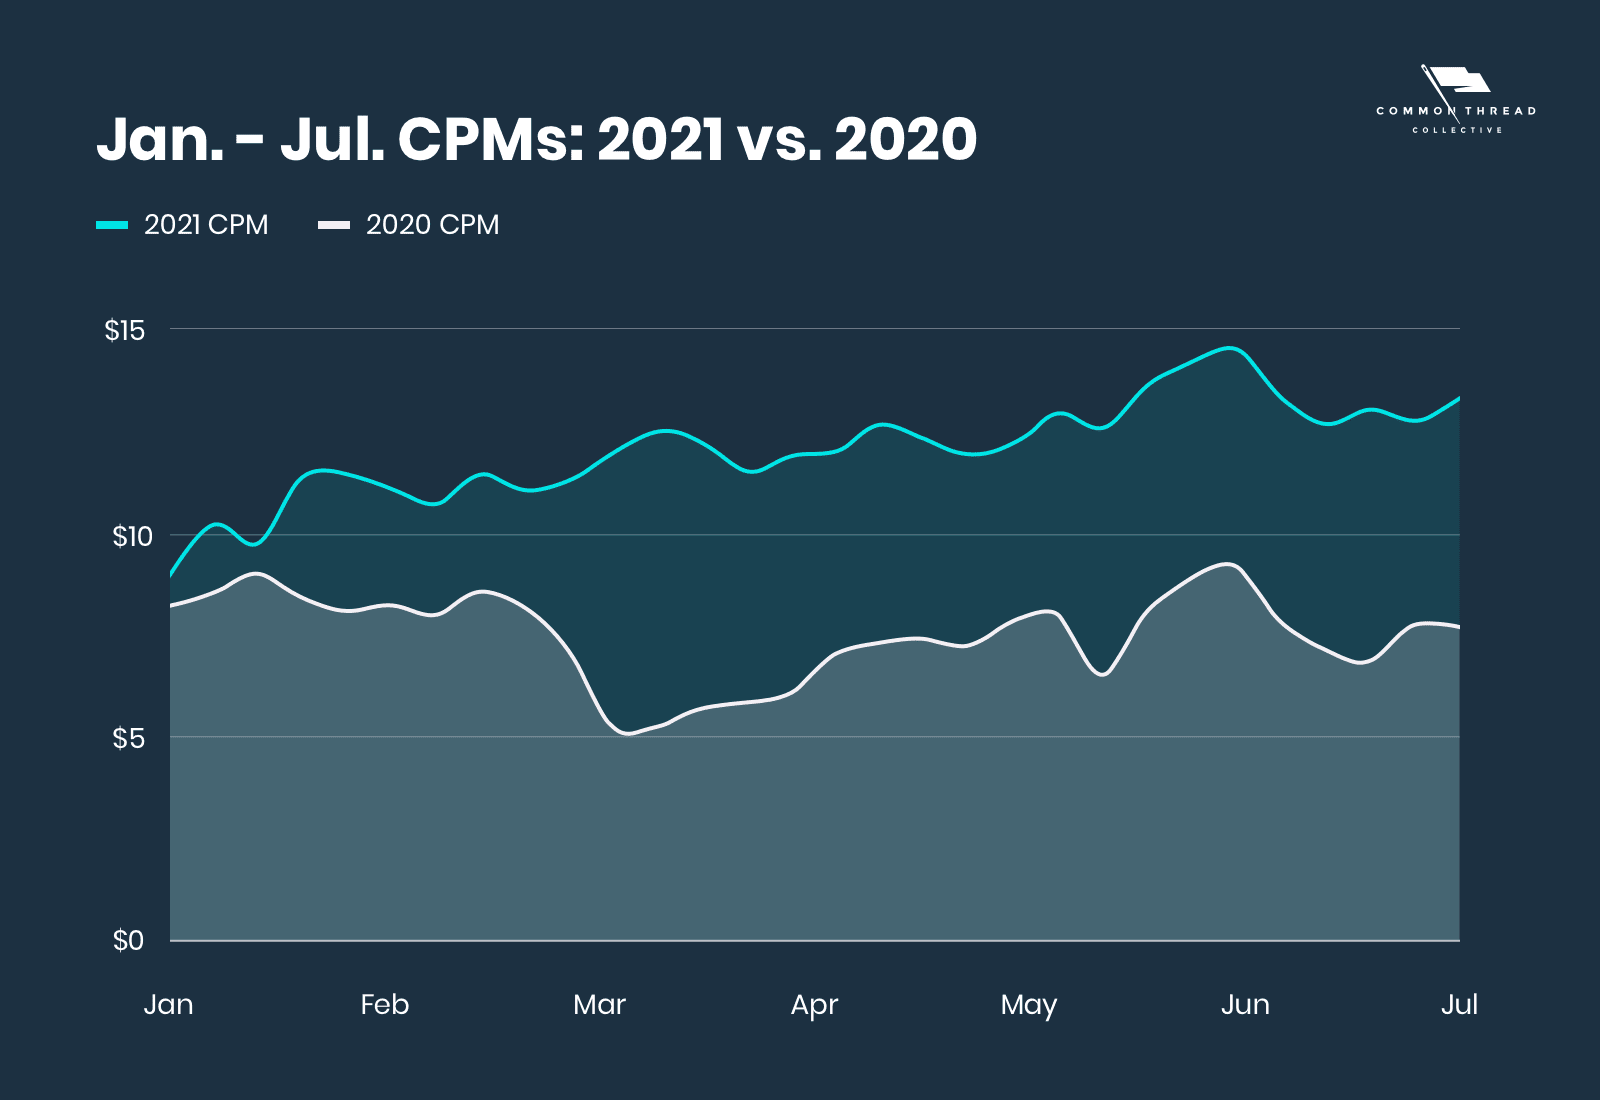 comparing CPMS: January-July in 2021 vs. 2020